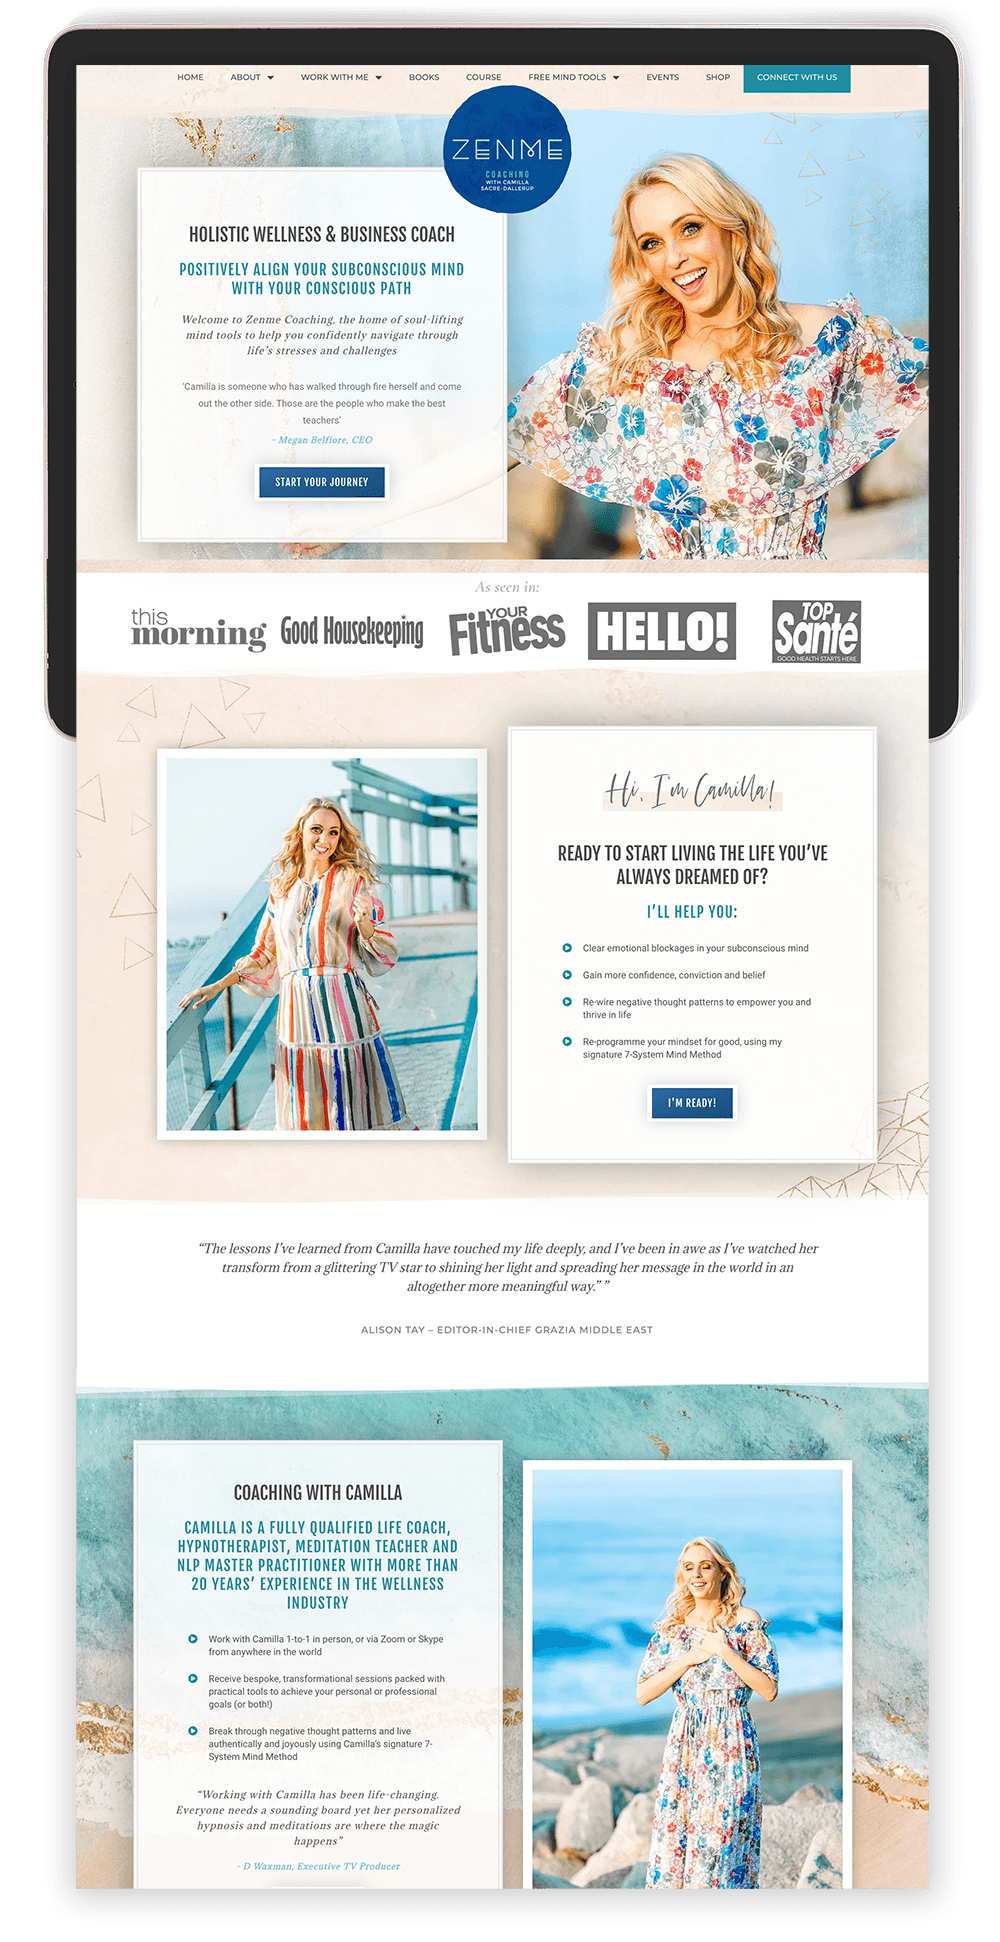 Image of Camilla Sacre-Dallerup's Website by Tracy Raftl Design